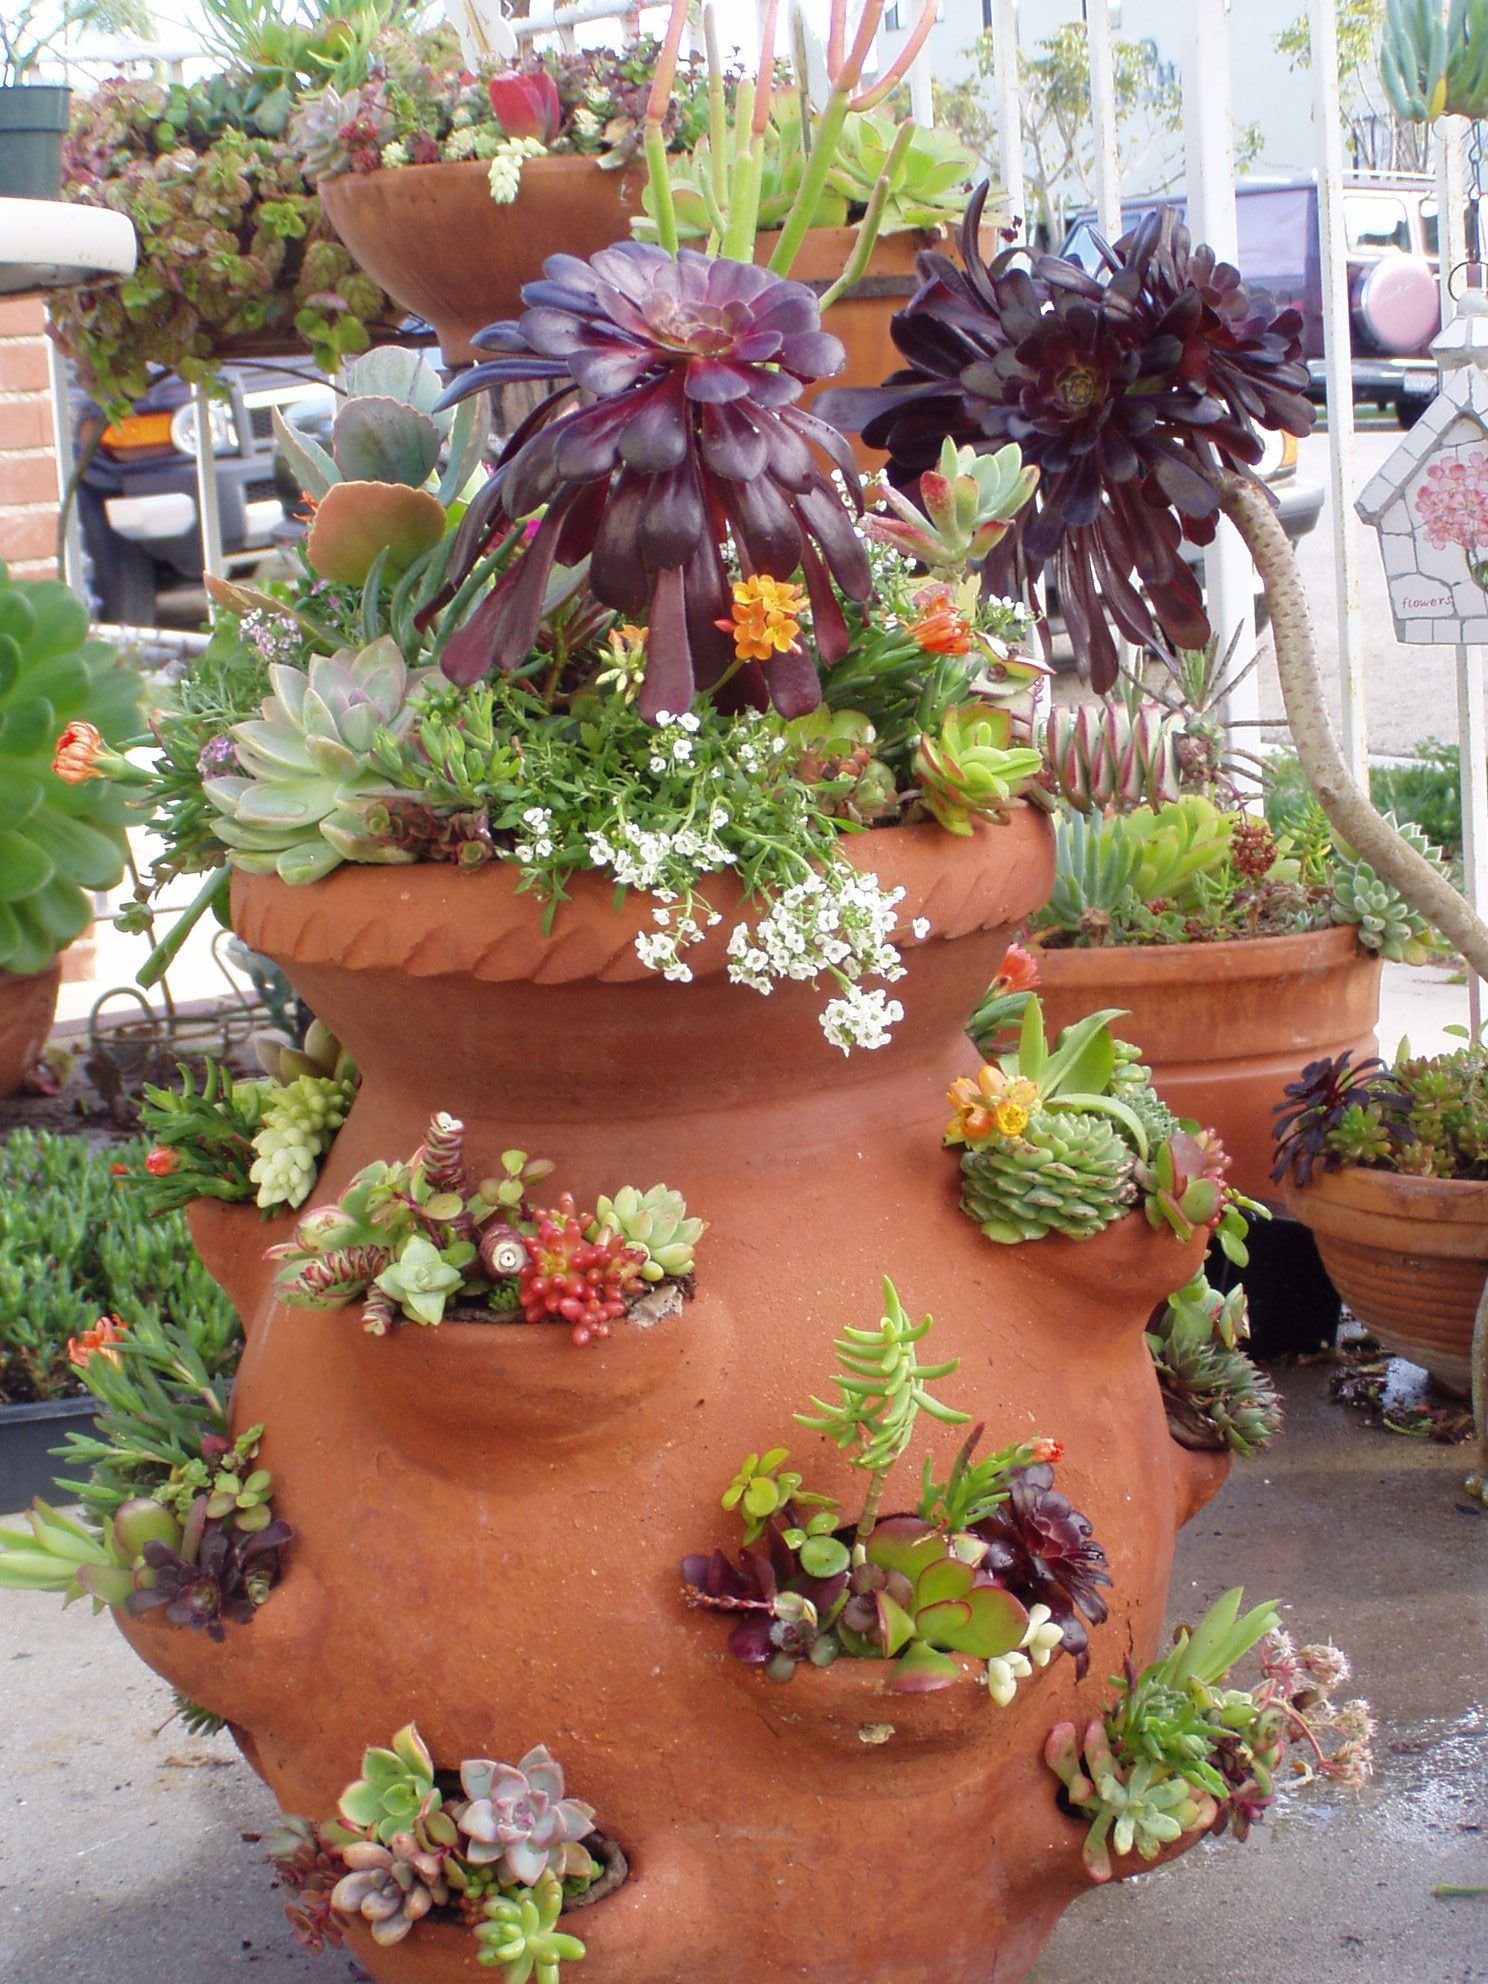 Image detail for -STRAWBERRY SUCCULENT POT - Garden-Share : different types of flower pots - startupinsights.org